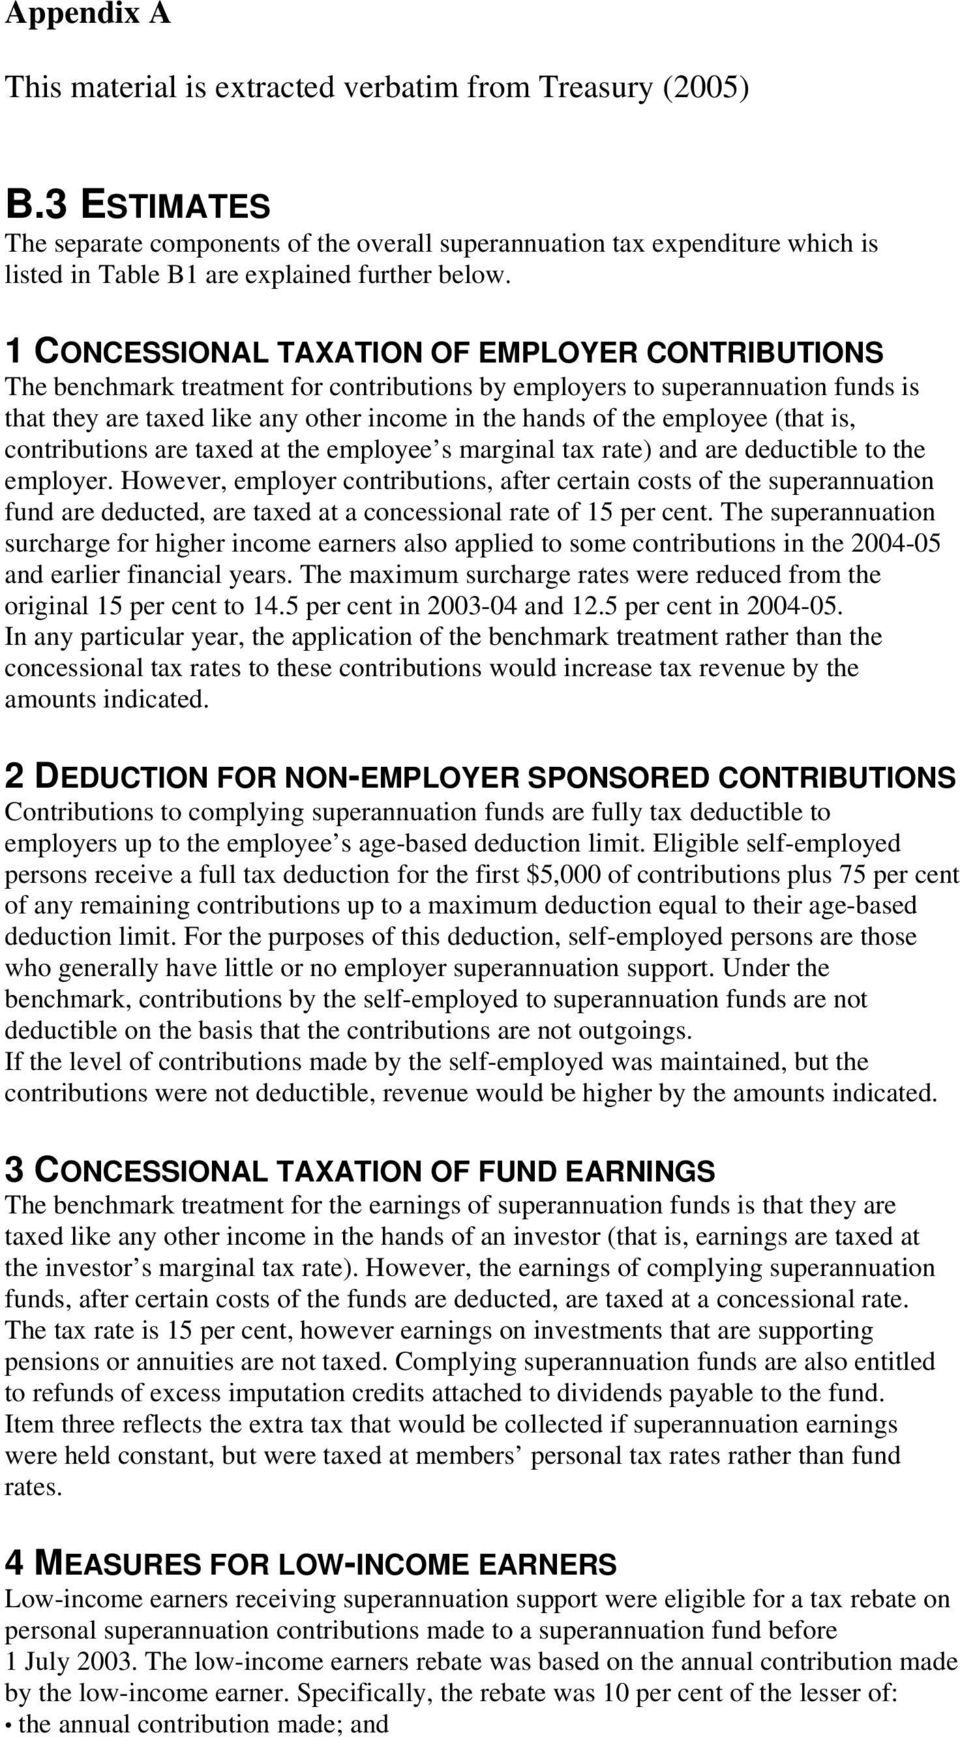 1 CONCESSIONAL TAXATION OF EMPLOYER CONTRIBUTIONS The benchmark treatment for contributions by employers to superannuation funds is that they are taxed like any other income in the hands of the